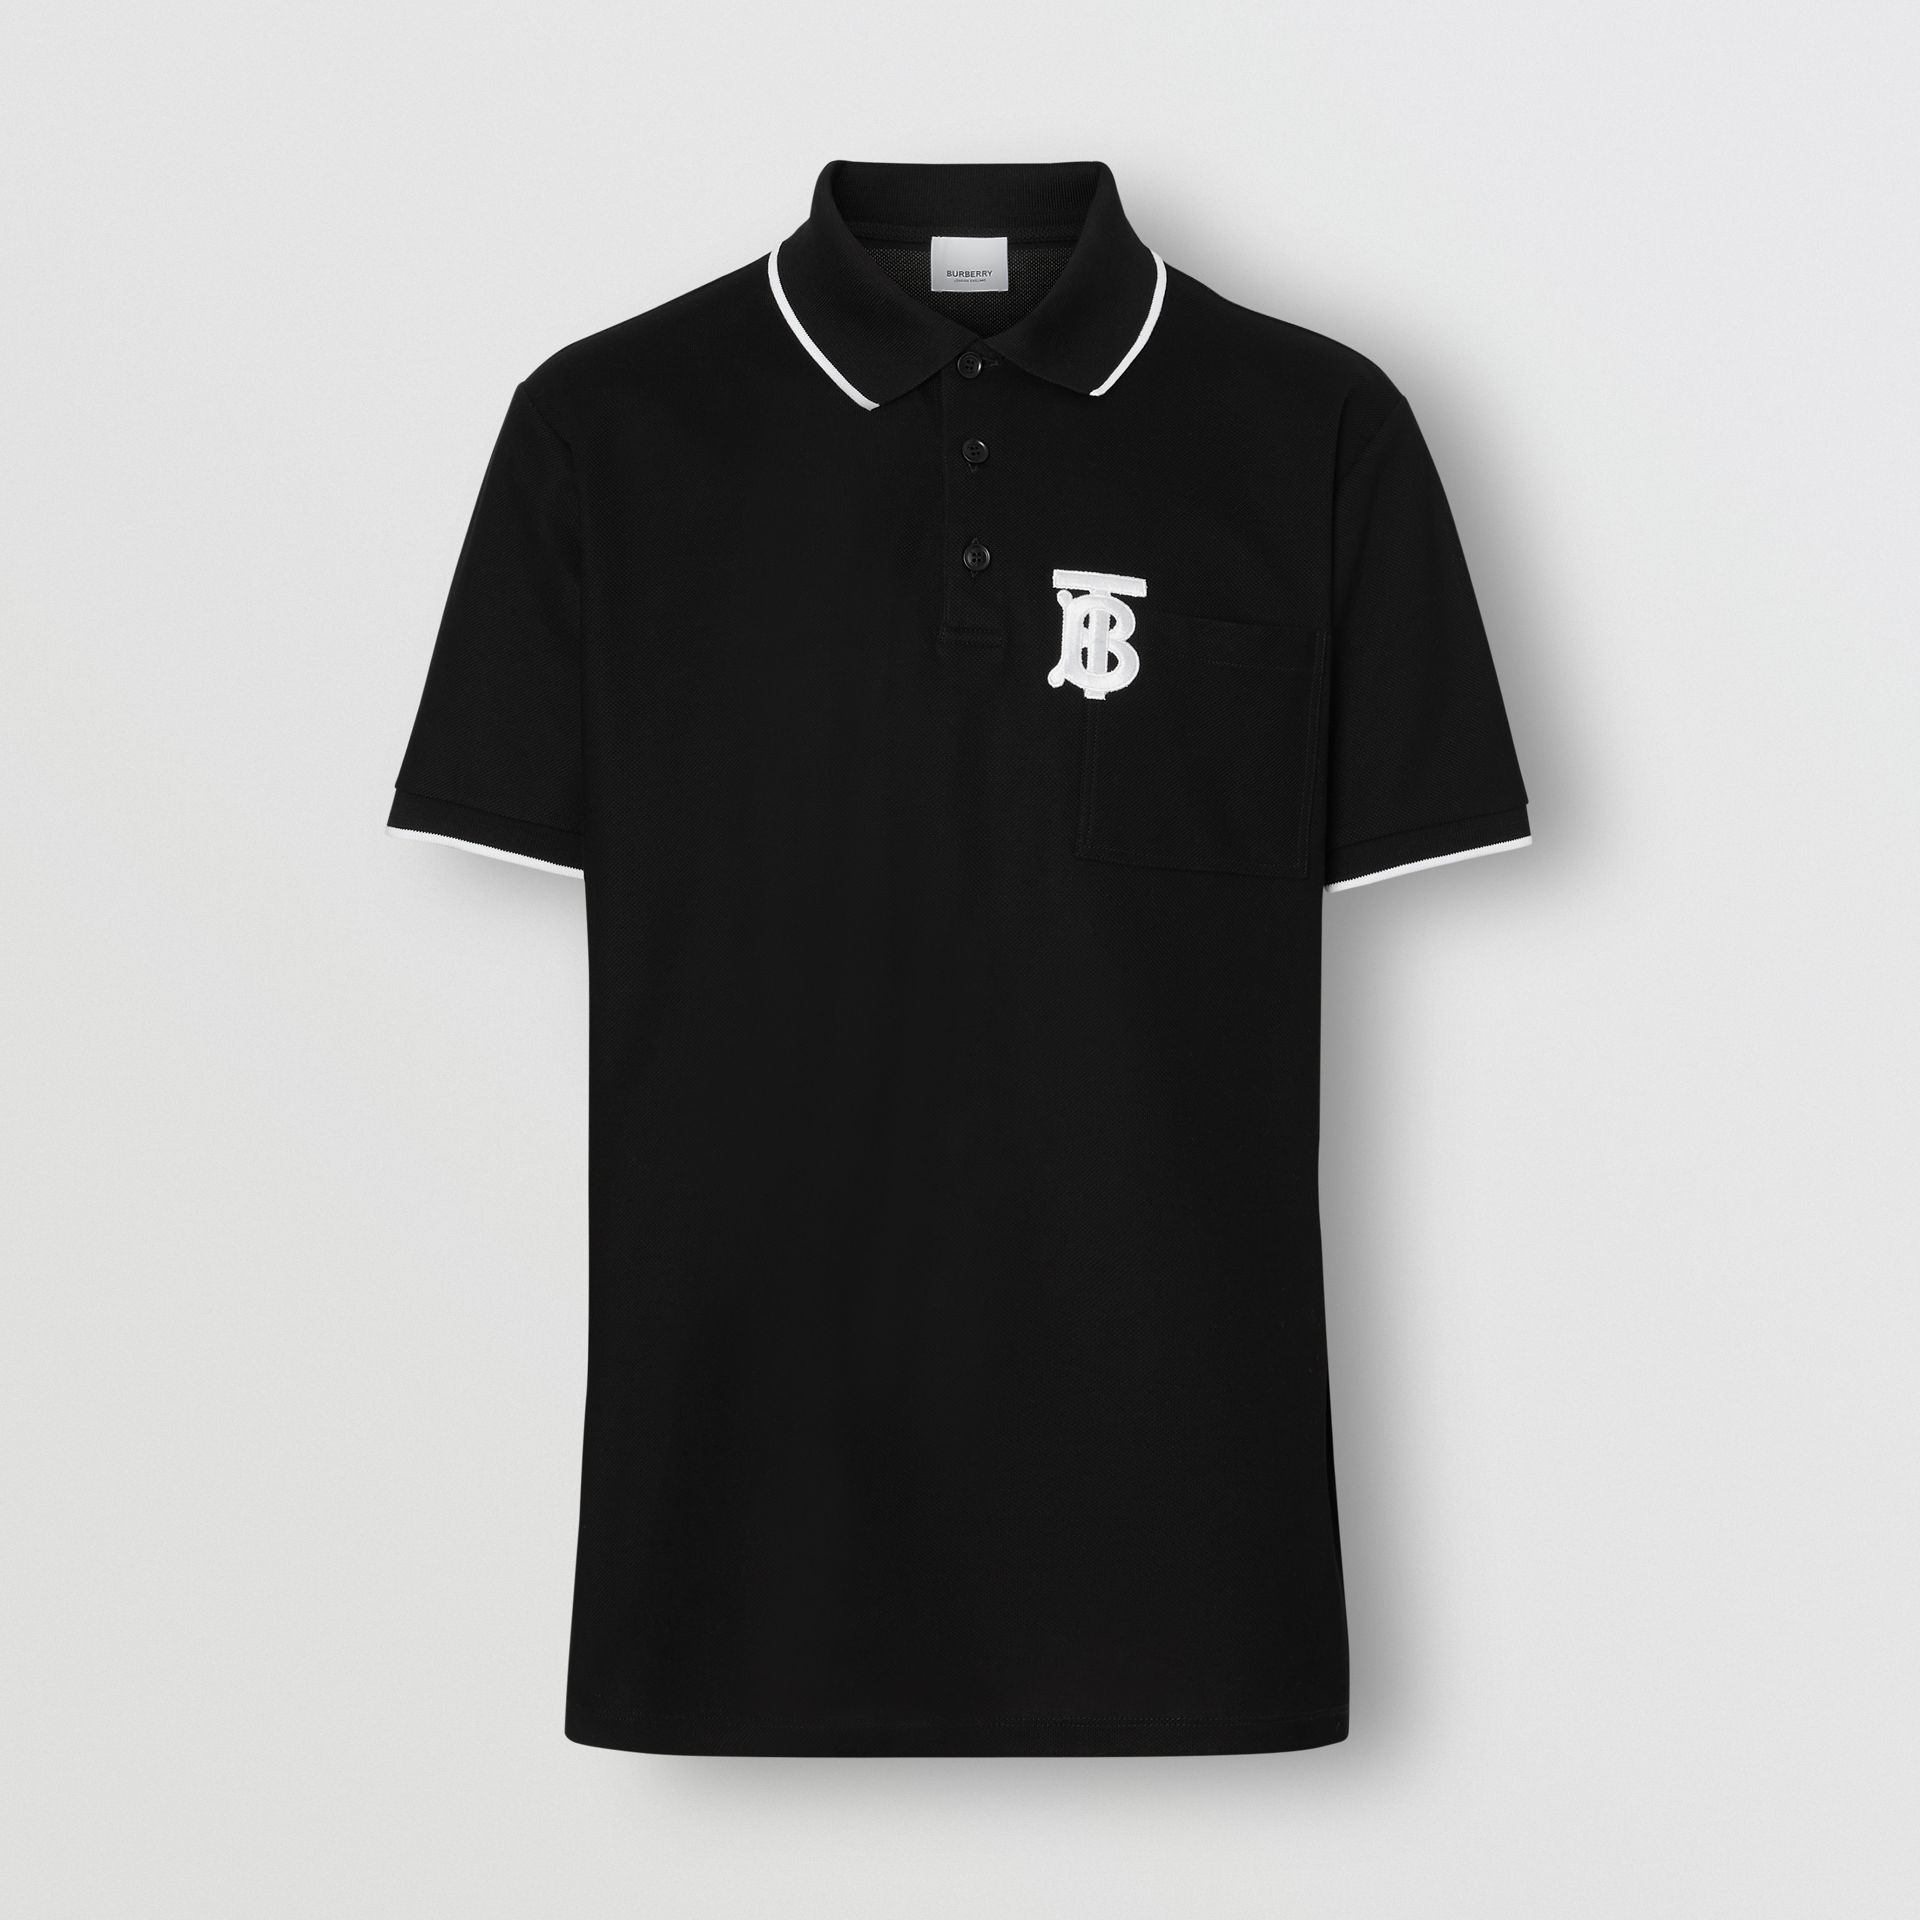 Monogram Motif Tipped Cotton Piqué Polo Shirt in Black - Men | Burberry Hong Kong - gallery image 3